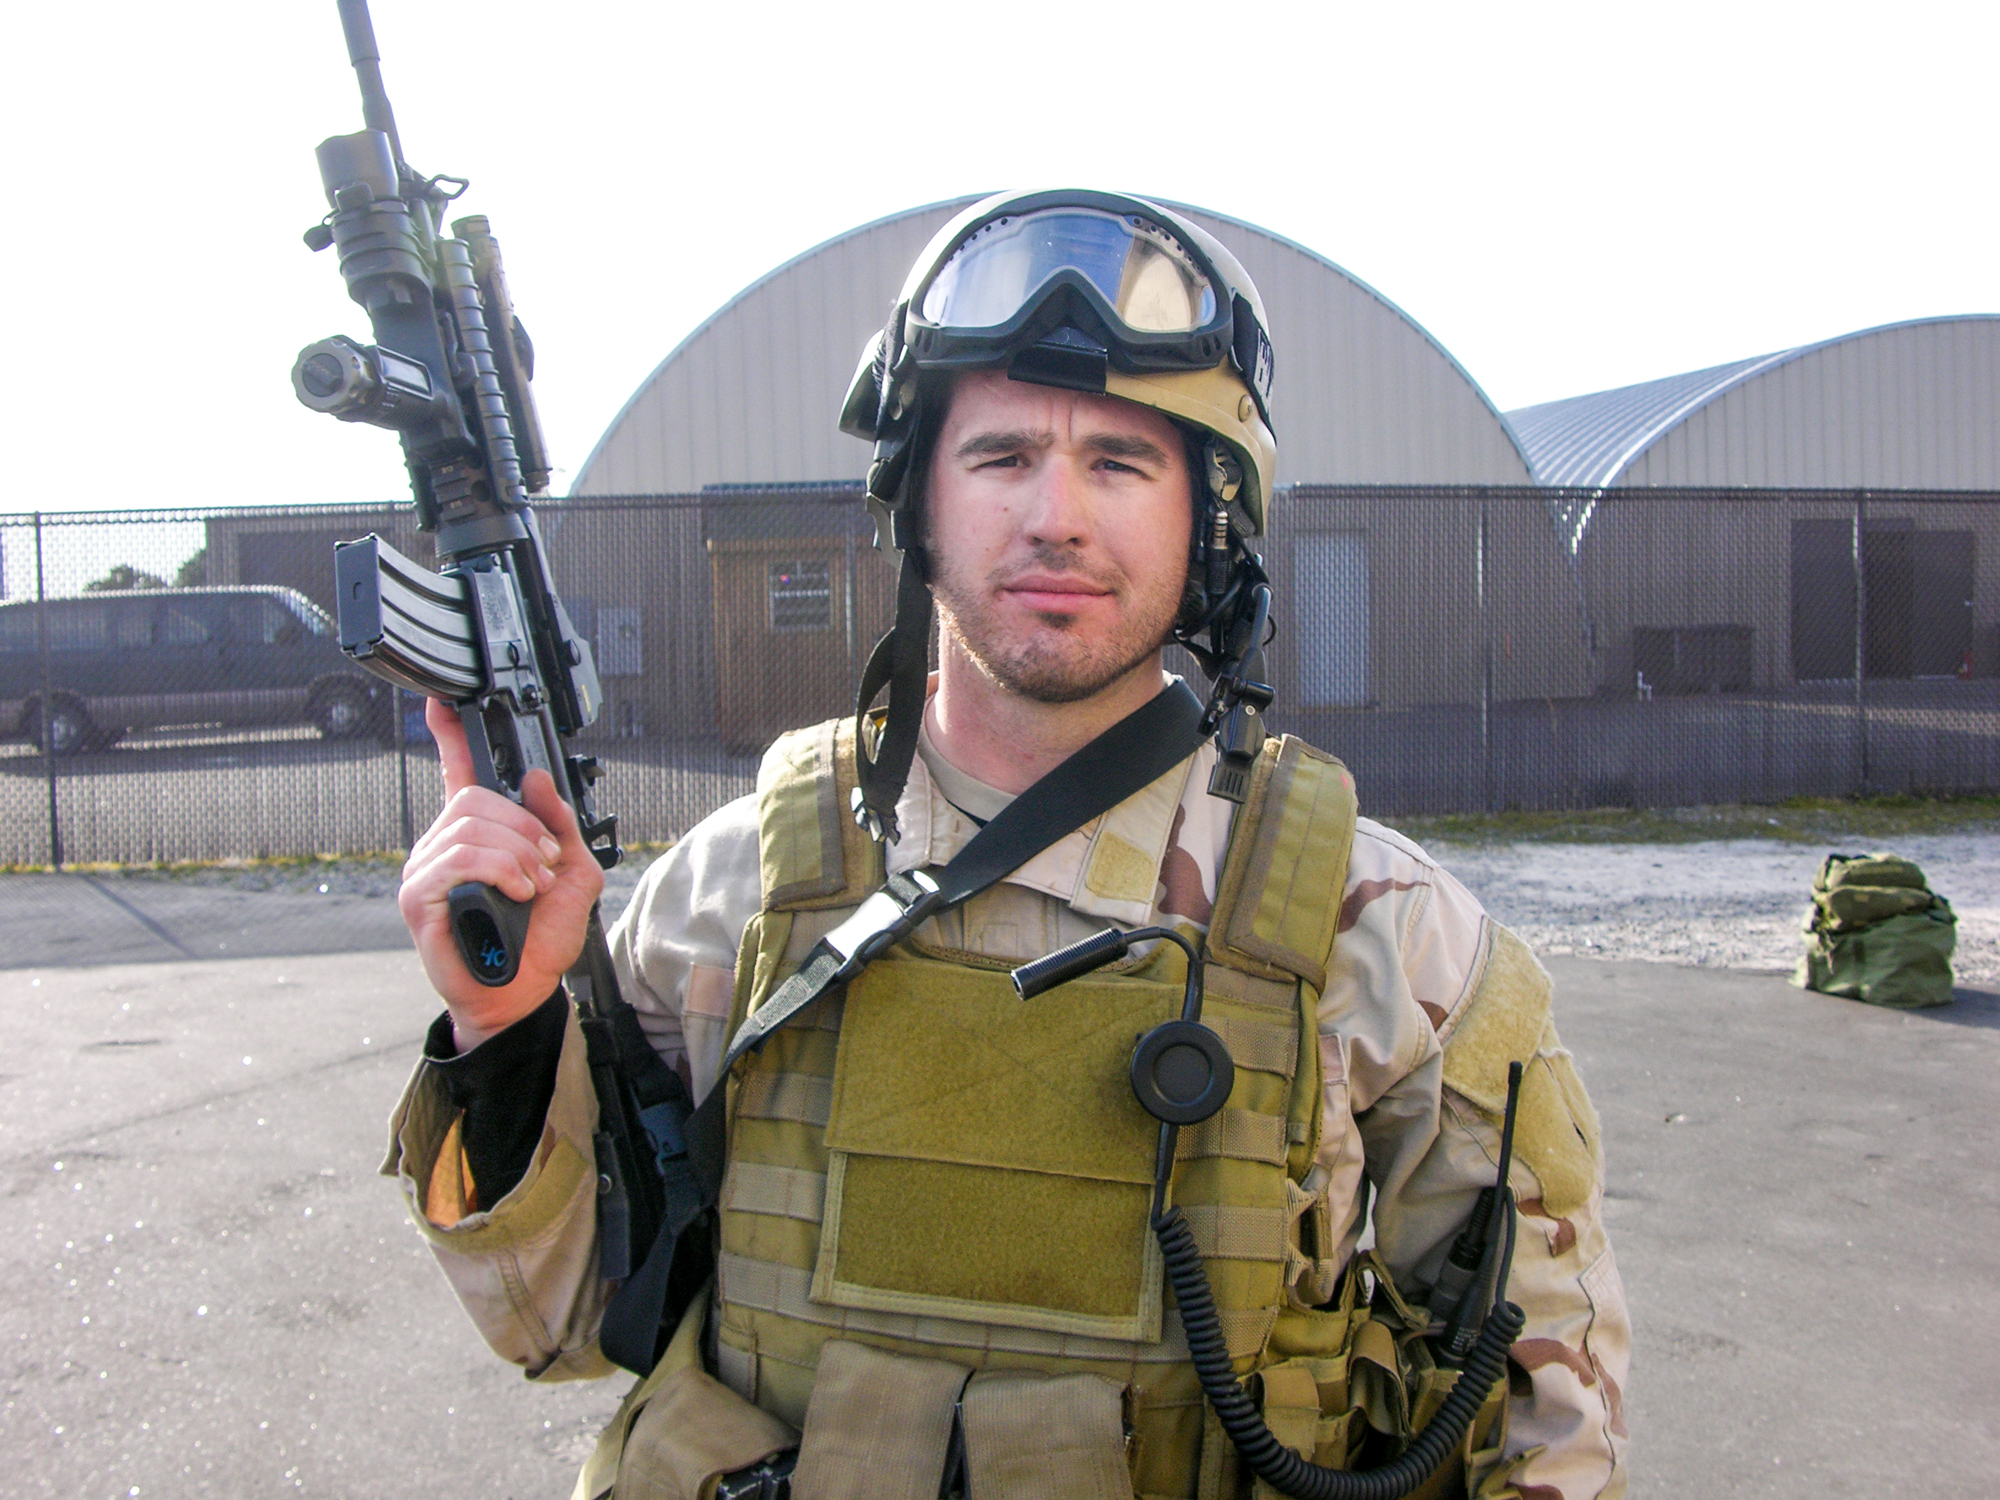 United States Army Capt. Benjamin David Tiffner, 31, of West Virginia, died Nov. 7, 2007, when his vehicle was struck by an improvised-explosive device in Baghdad, Iraq, while he was supporting Operation Iraqi Freedom.    In 1996, Tiffner was nominated by Senator Robert Byrd to the U.S. Military Academy at West Point. He graduated from the Academy in 2000. After six years of service, Tiffner graduated from the Special Forces Qualification Course and was assigned to the 5th Special Forces Group (Airborne).    Tiffner's mother, Judith, said her son always wanted to serve.